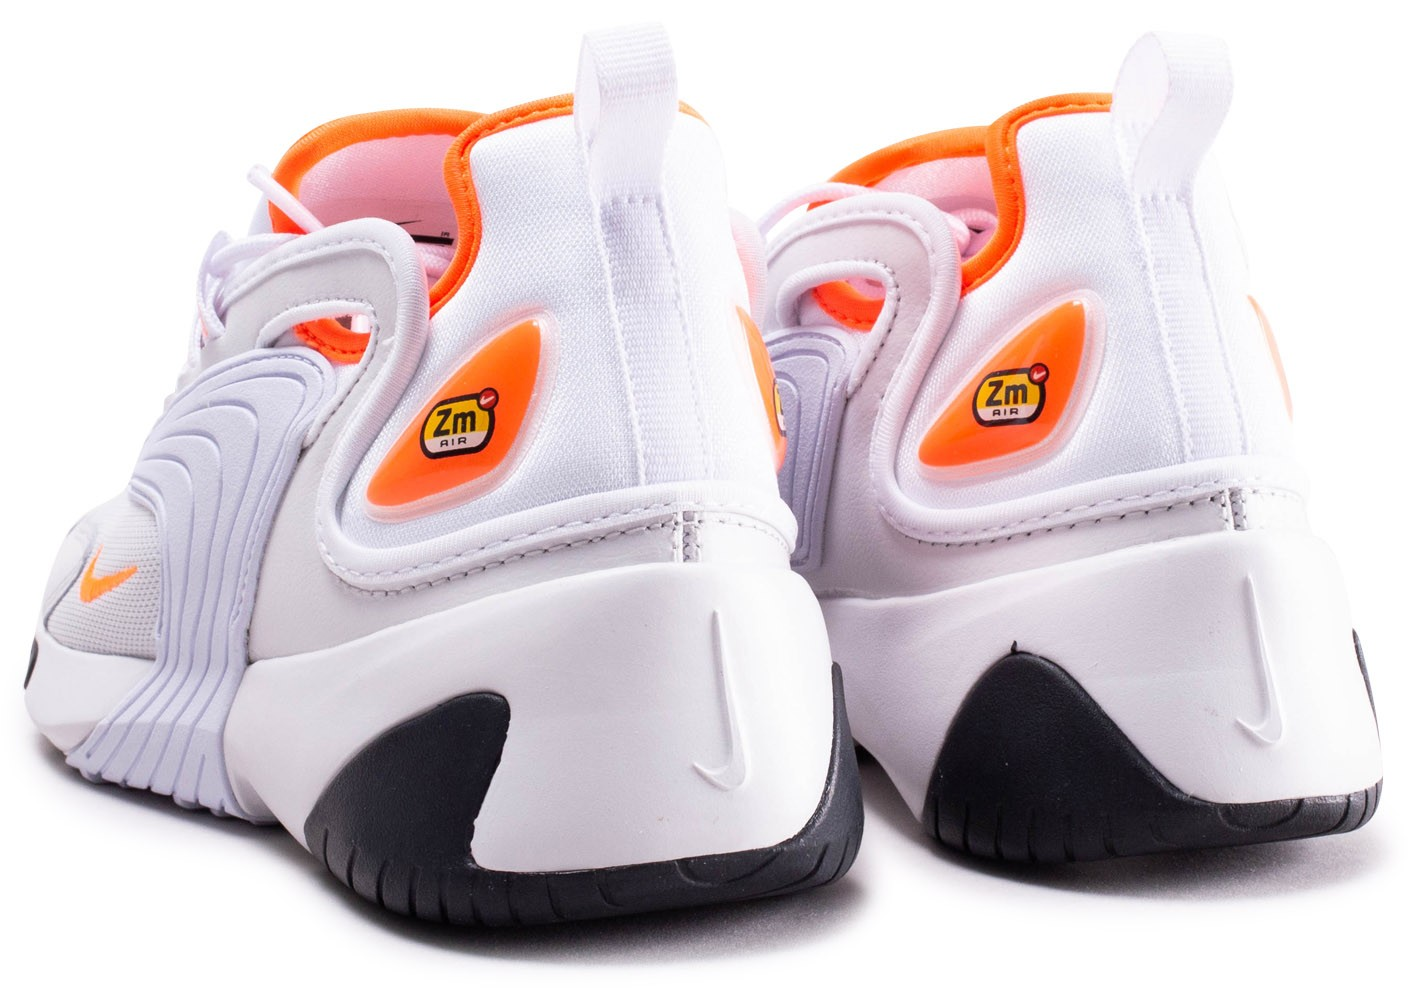 cheaper buy running shoes Nike Zoom 2K blanche et orange femme - Chaussures Baskets ...